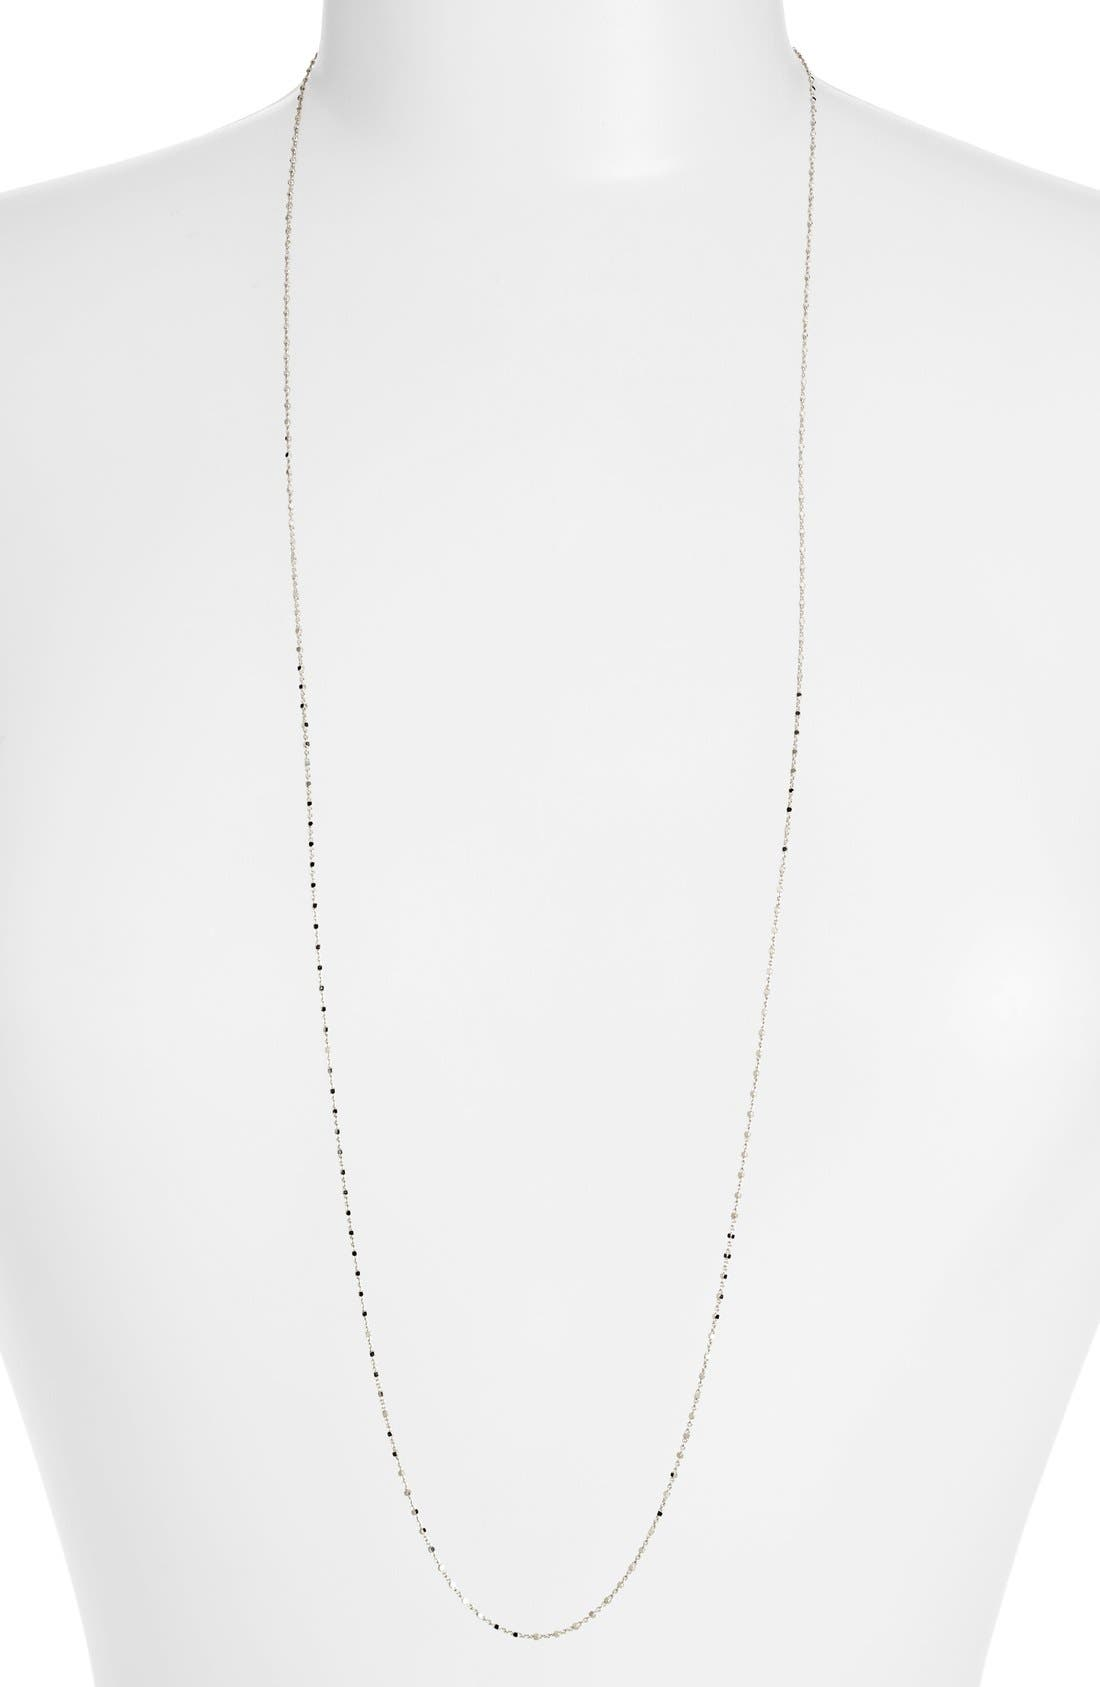 Main Image - Bony Levy Beaded Chain Long Necklace (Nordstrom Exclusive)